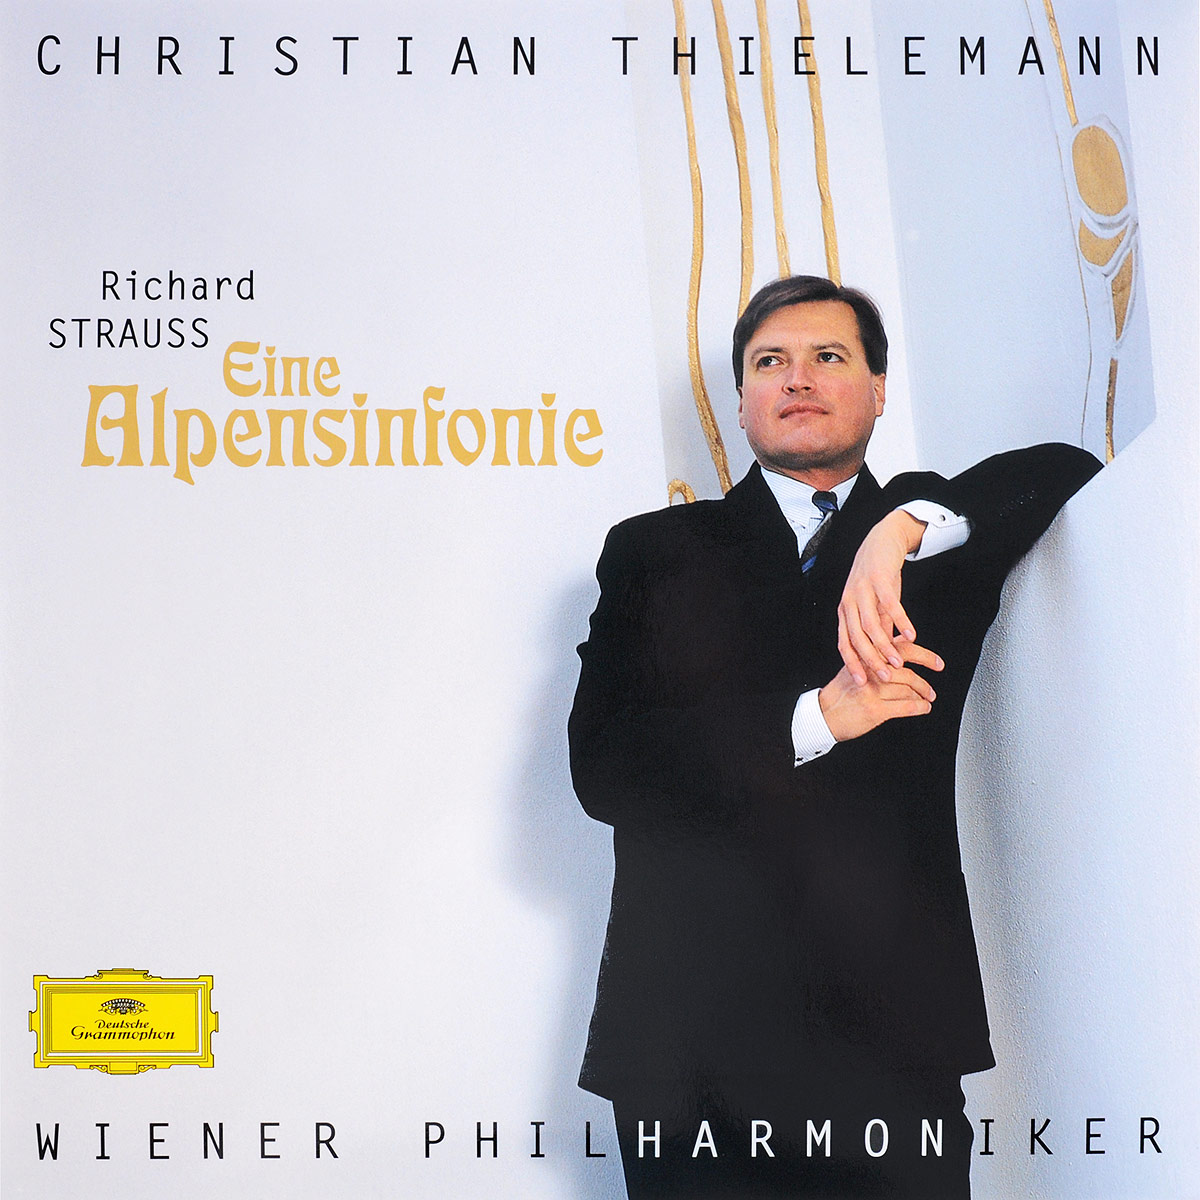 Christian Thielemann. Richard Strauss. Eine Alpensinfonie (LP)